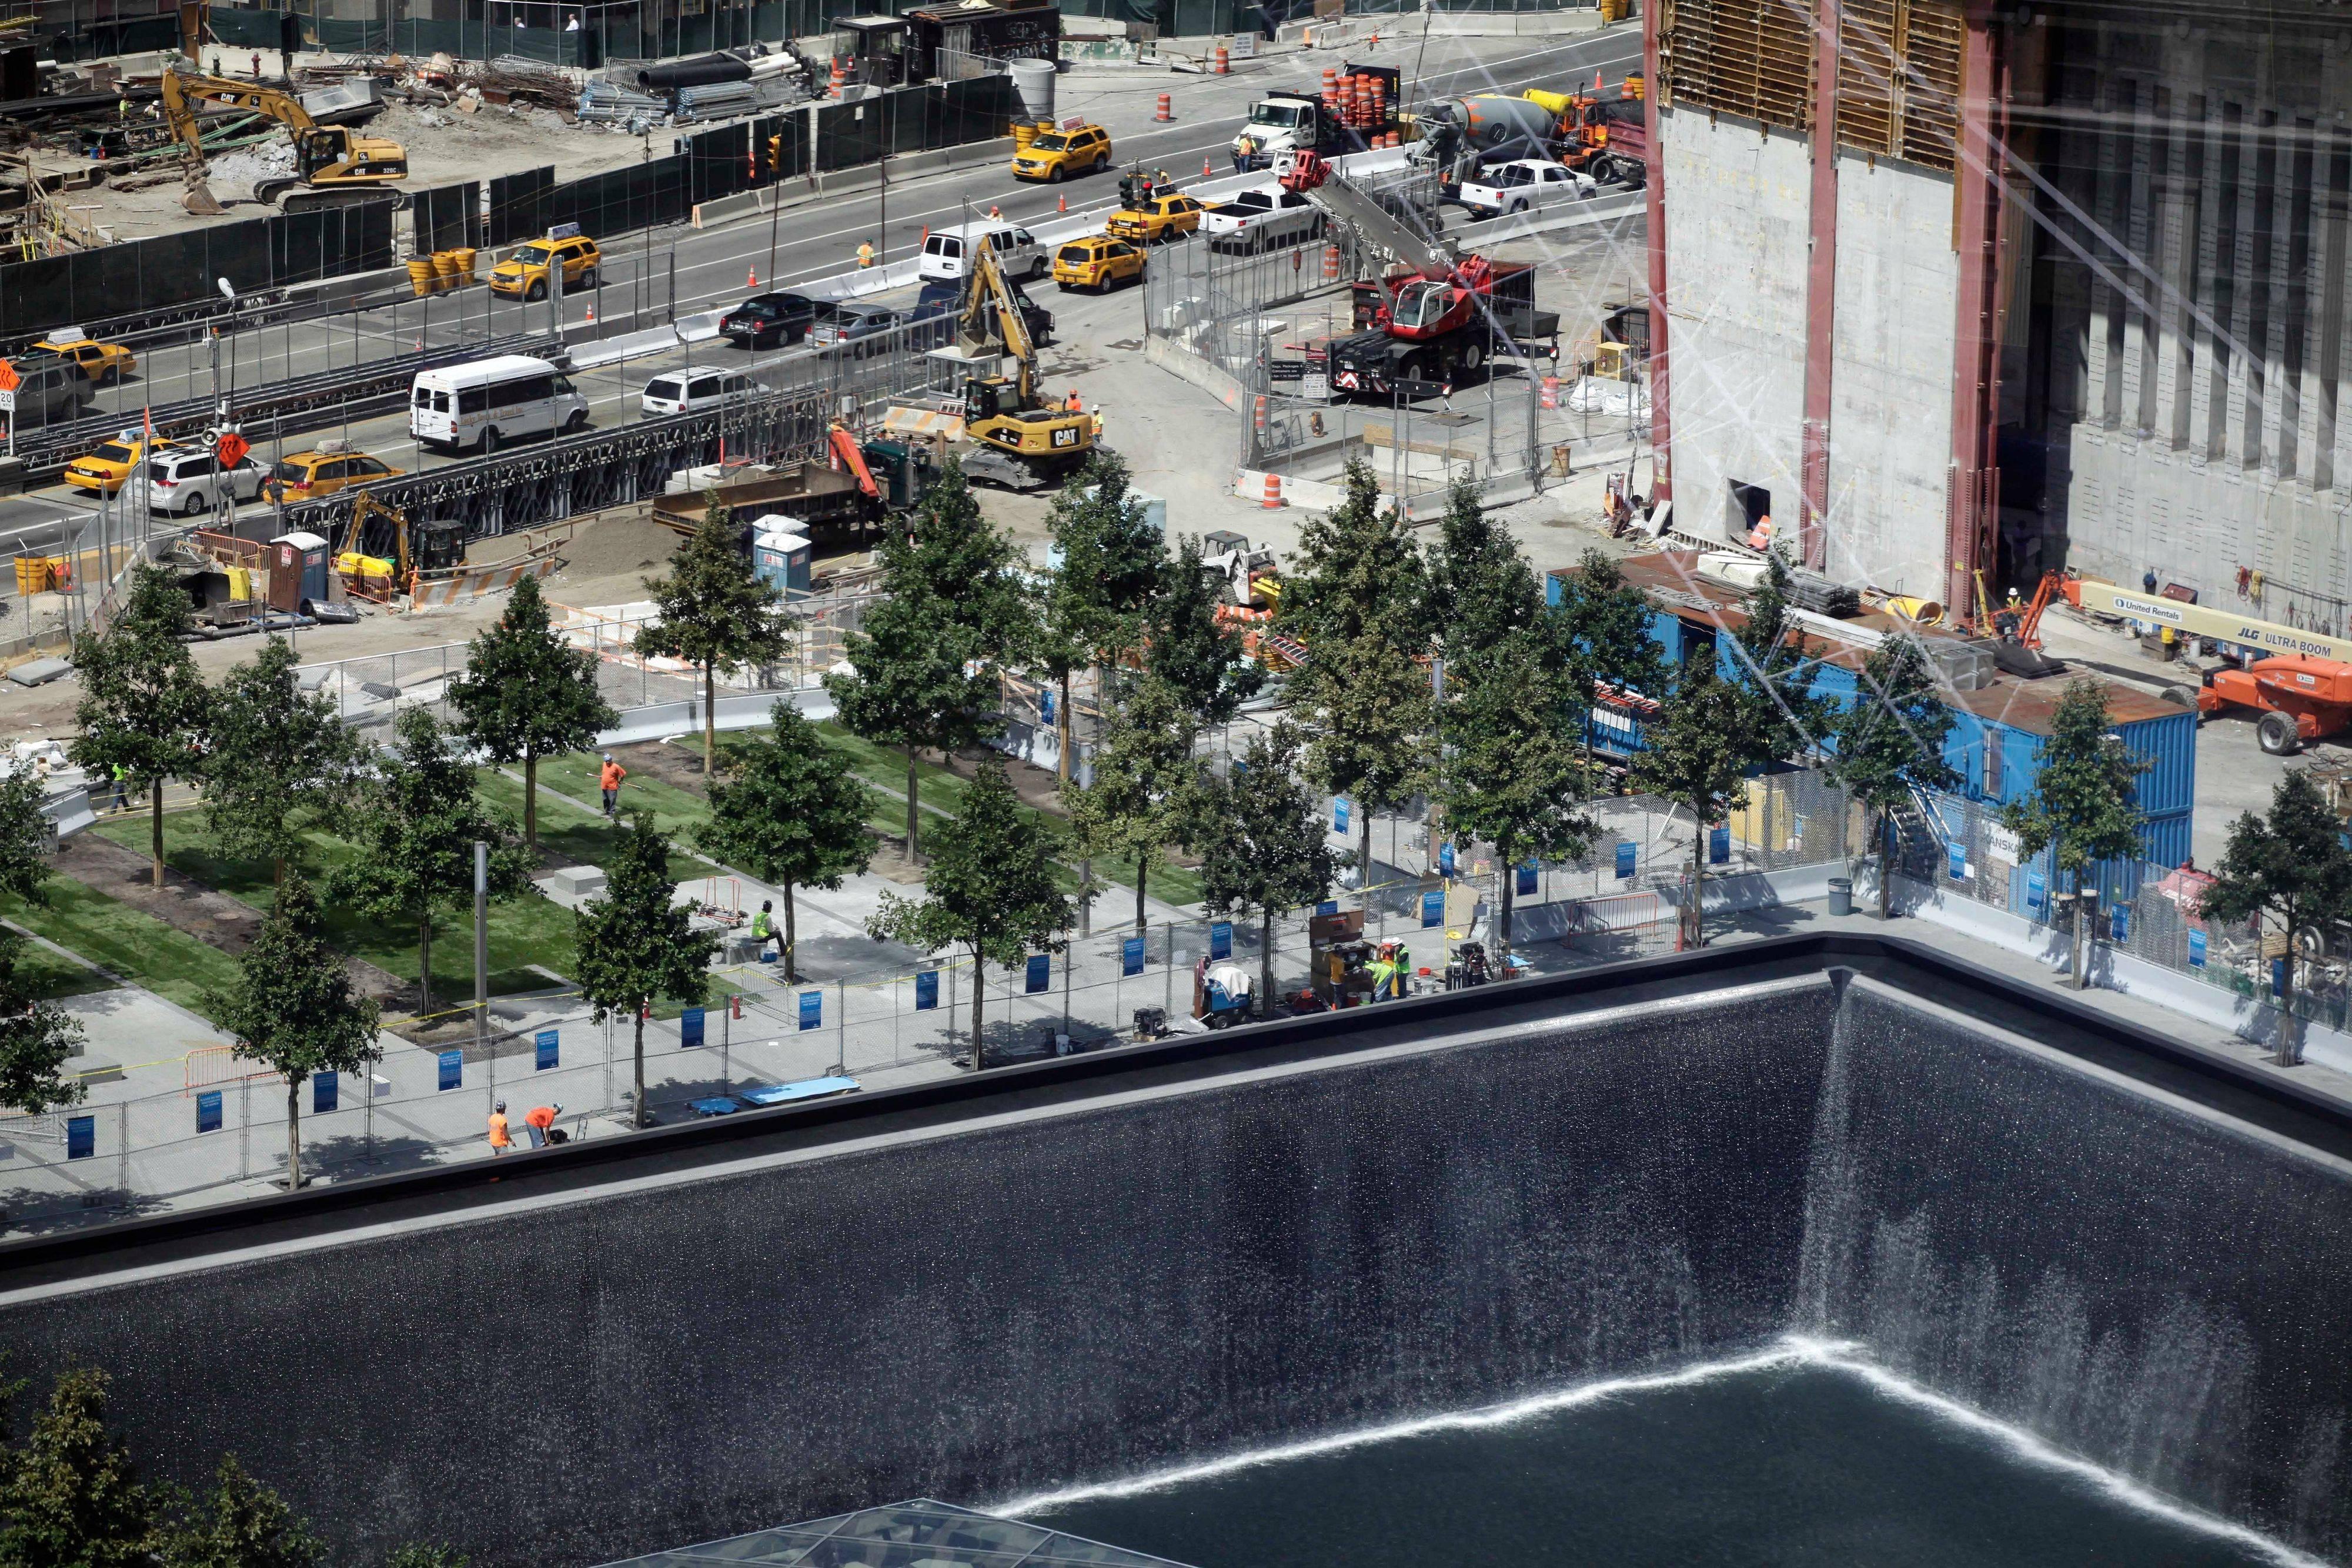 Construction continues at the September 11 Memorial waterfalls on Wednesday in New York. The arrangement of nearly 3,000 names at the World Trade Center memorial is now available as a free iPhone app.